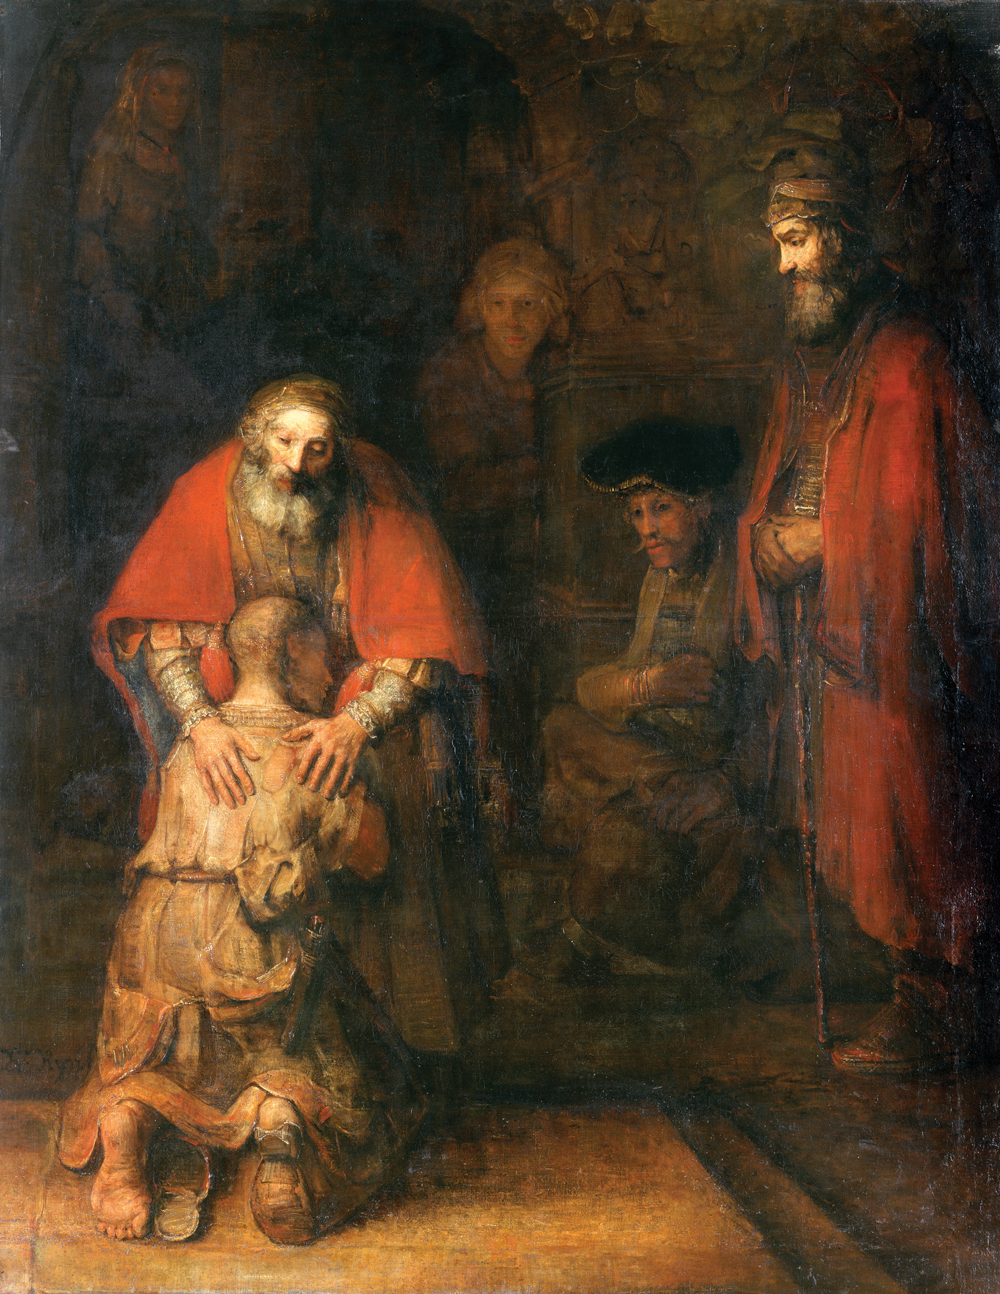 Rembrandt's,  The Return of the Prodigal Son, c. 1661-1669